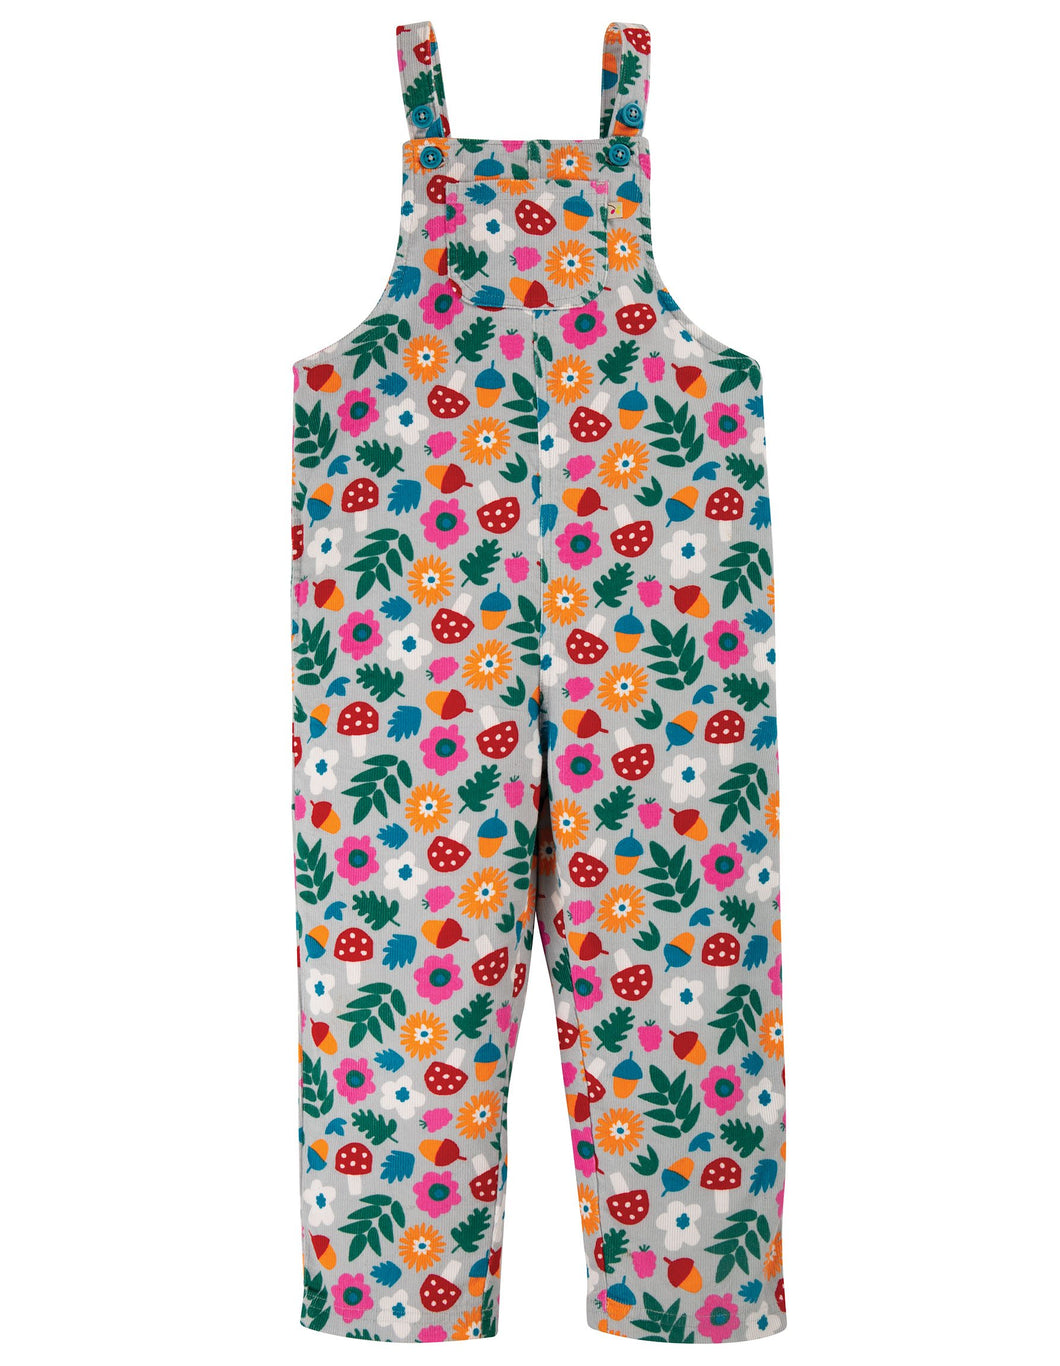 New Release Frugi Neptune Cord Dungaree Tin Roof Lost Words - The Thrifty Stork